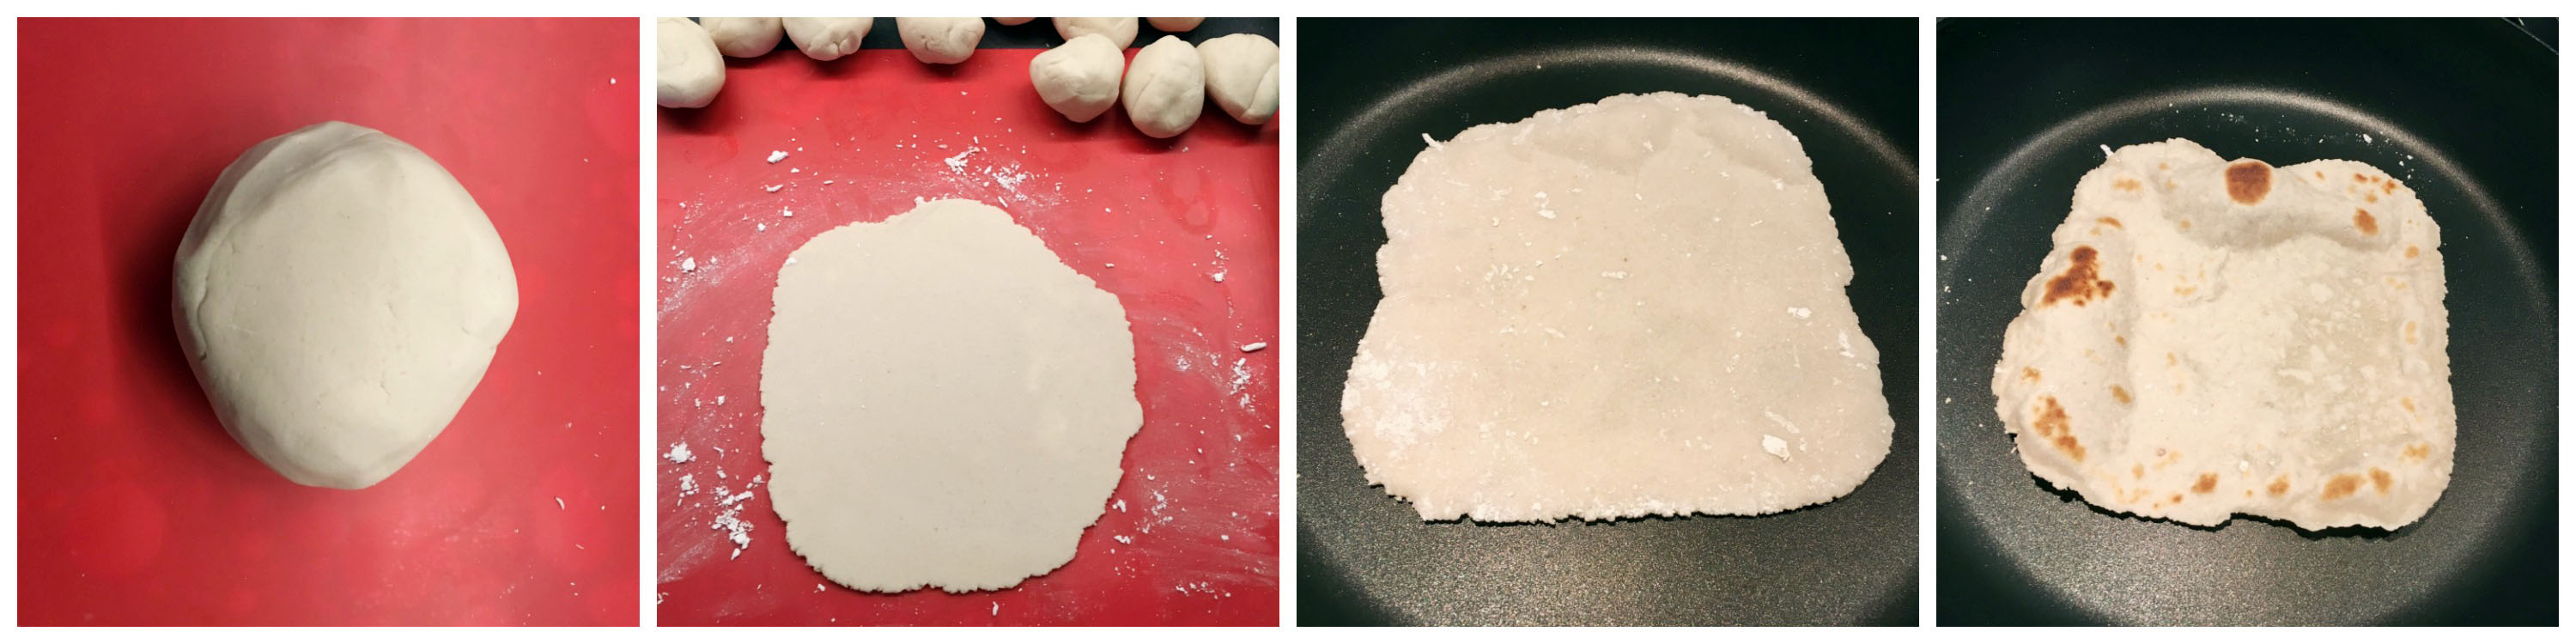 Homemade Grain Free Tortillas made from Cassava Flour